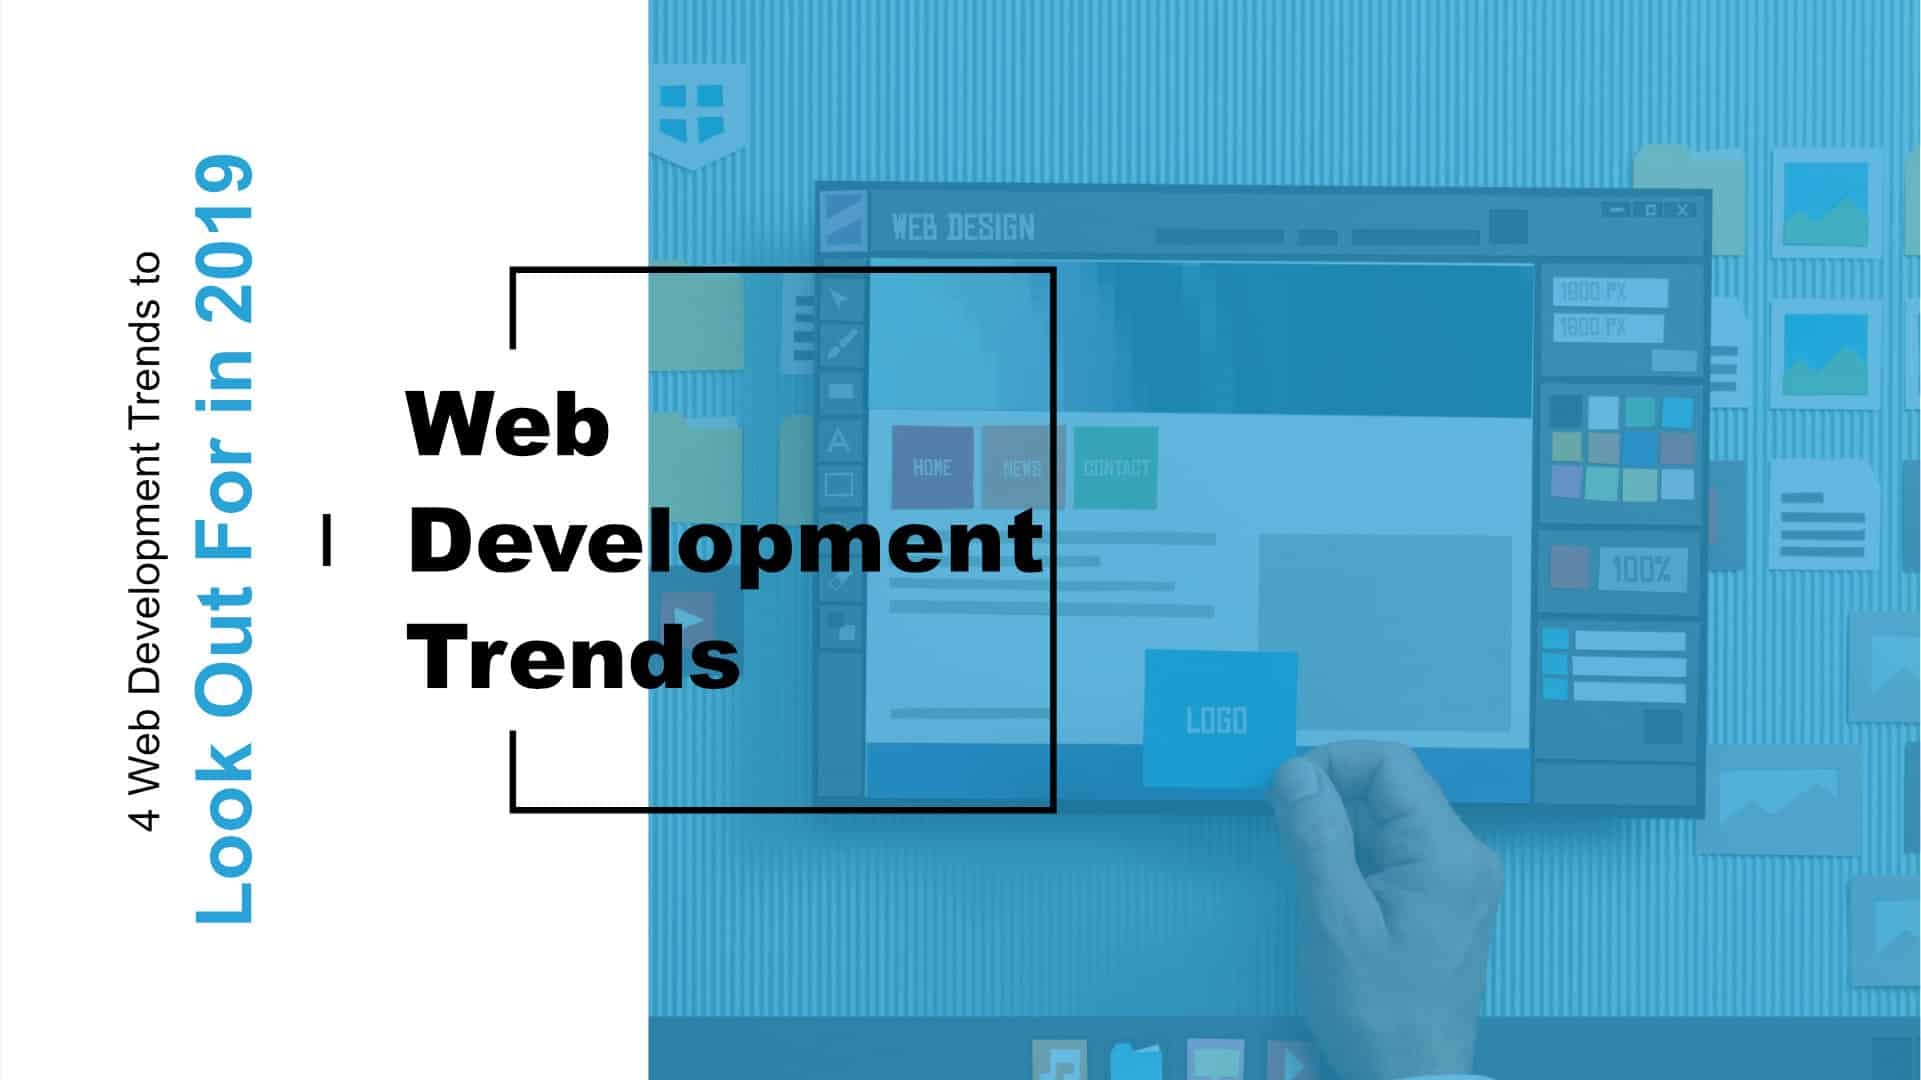 4 Web Development Trends To Look Out For in 2019 Featured Image